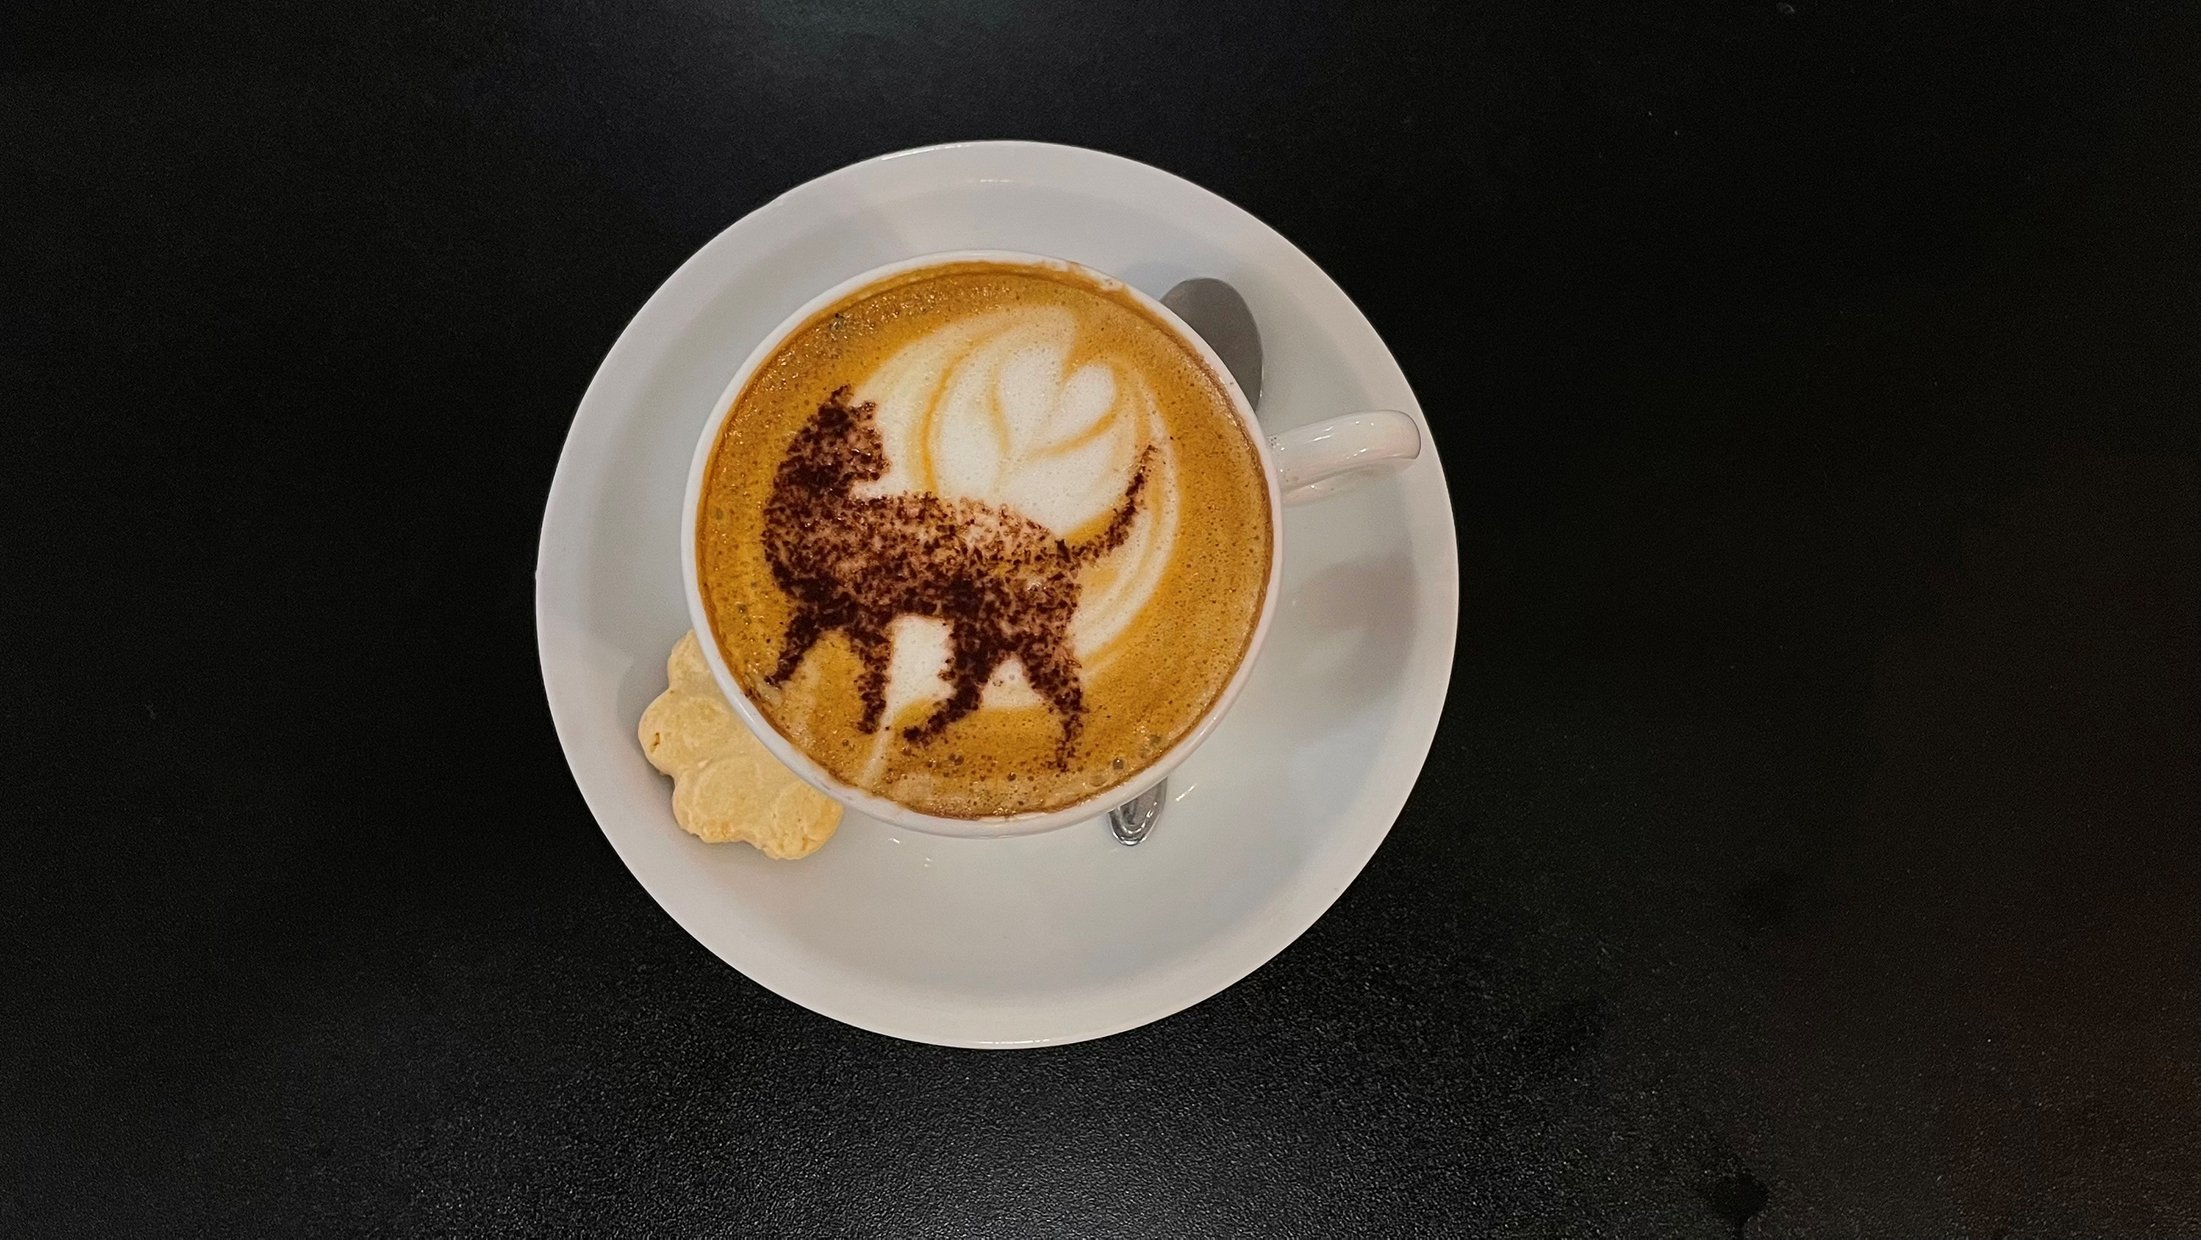 A cappuccino with an image of a cat is pictured at the Rio cat cafe or Gato Cafe, where customers can relax while adopting a feline, in Rio de Janeiro, Brazil, July 10, 2021. (Reuters Photo)